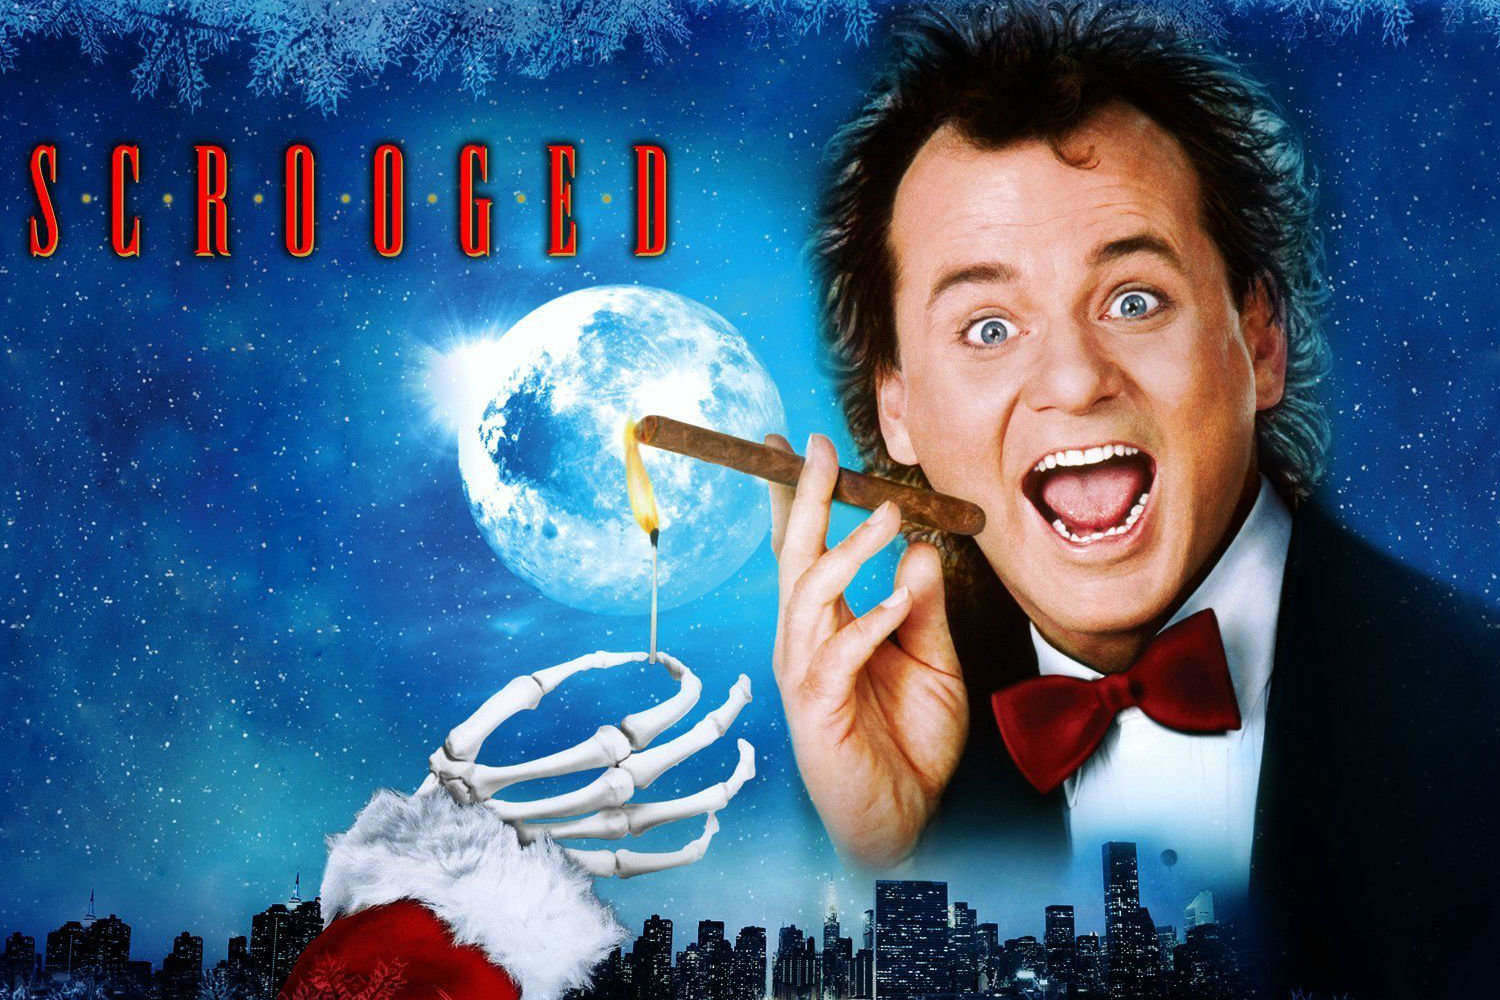 SNL Nerds – Episode 65 – Scrooged (1988)